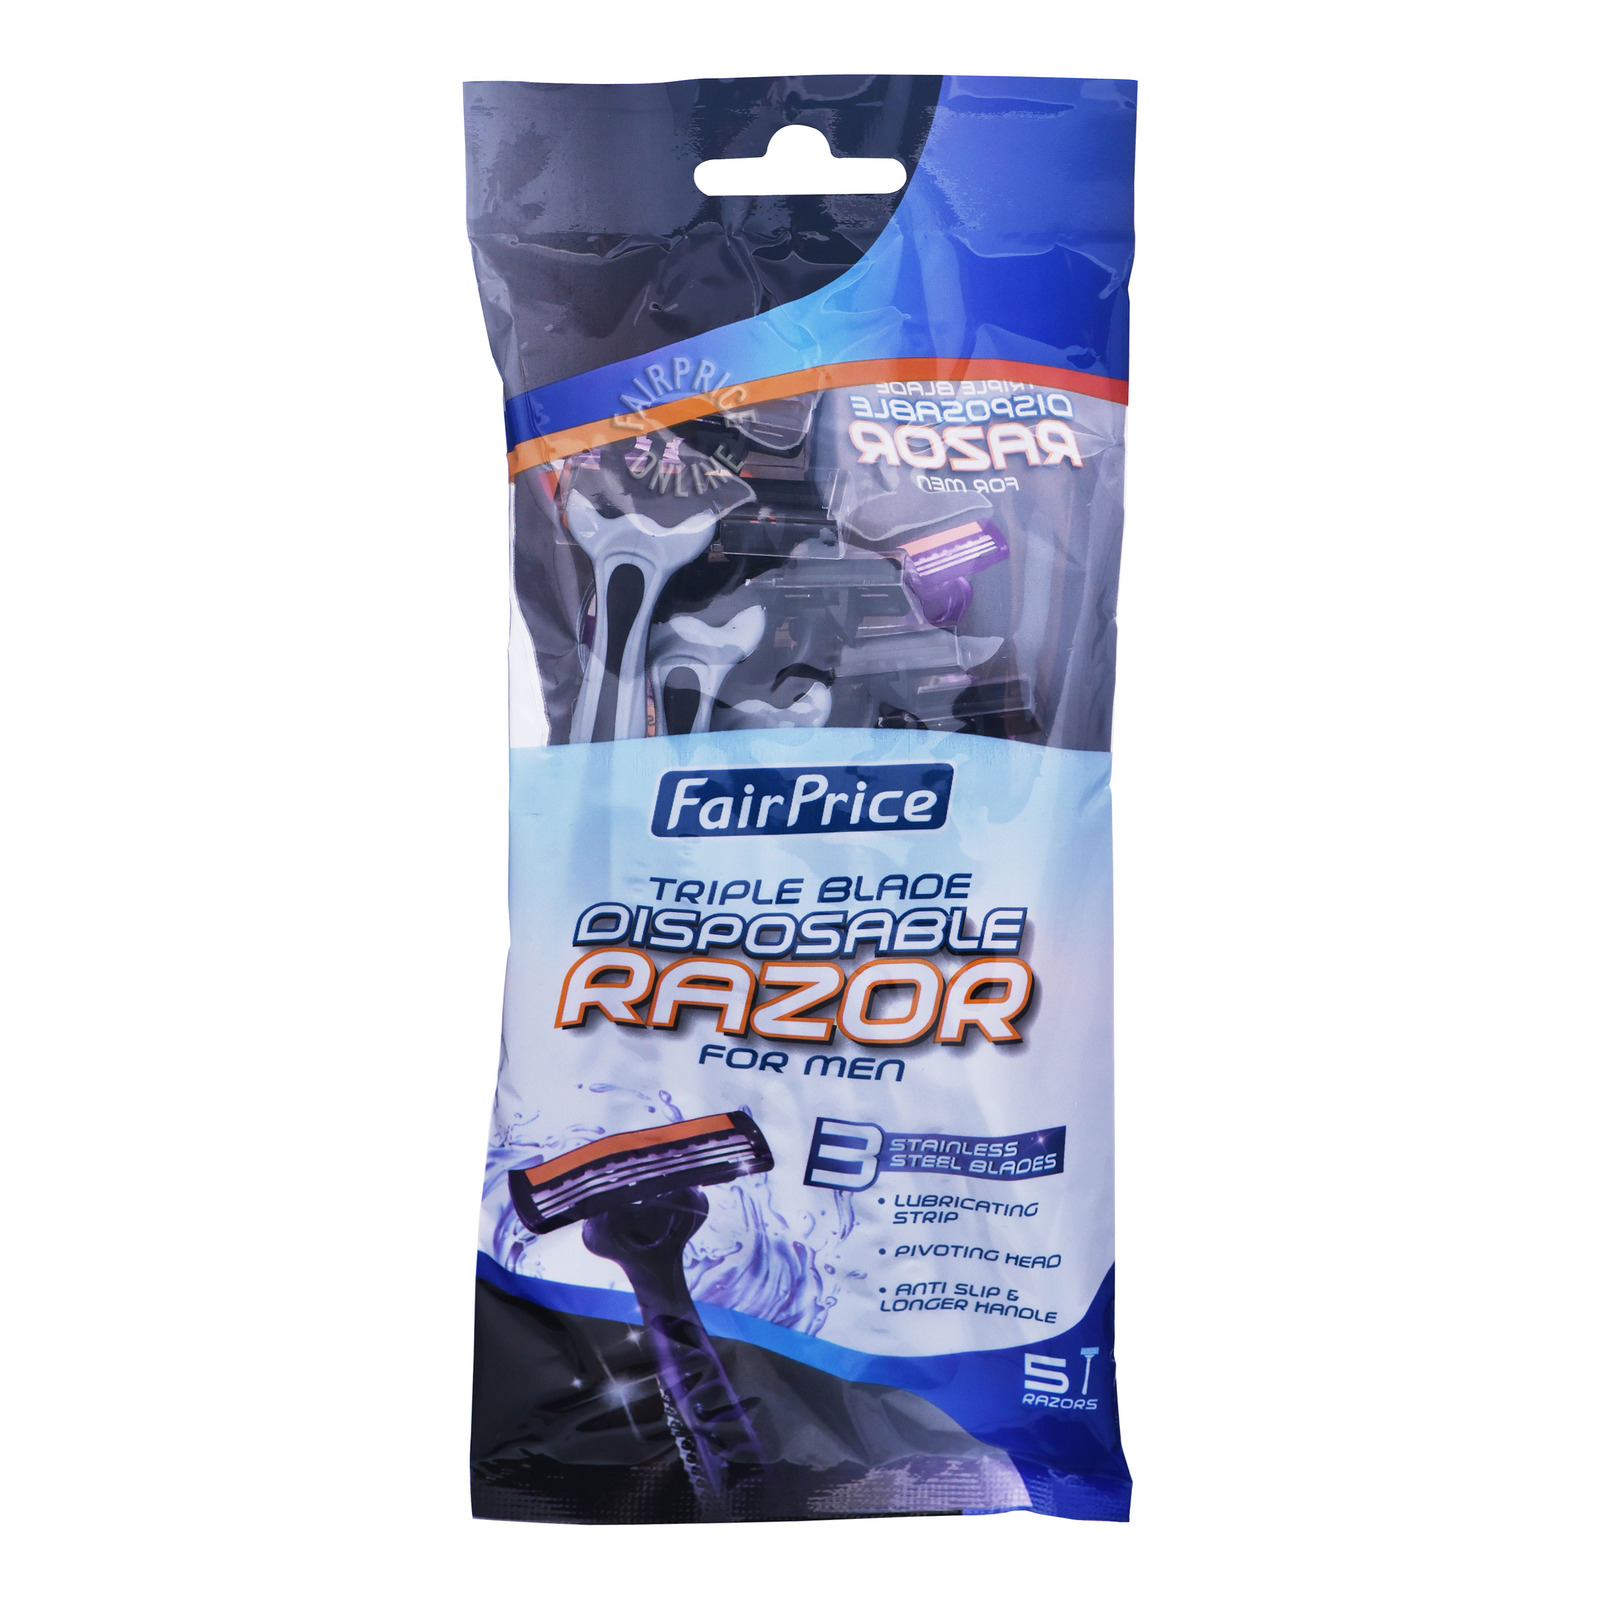 FairPrice Men Disposable Razor - Triple Blade